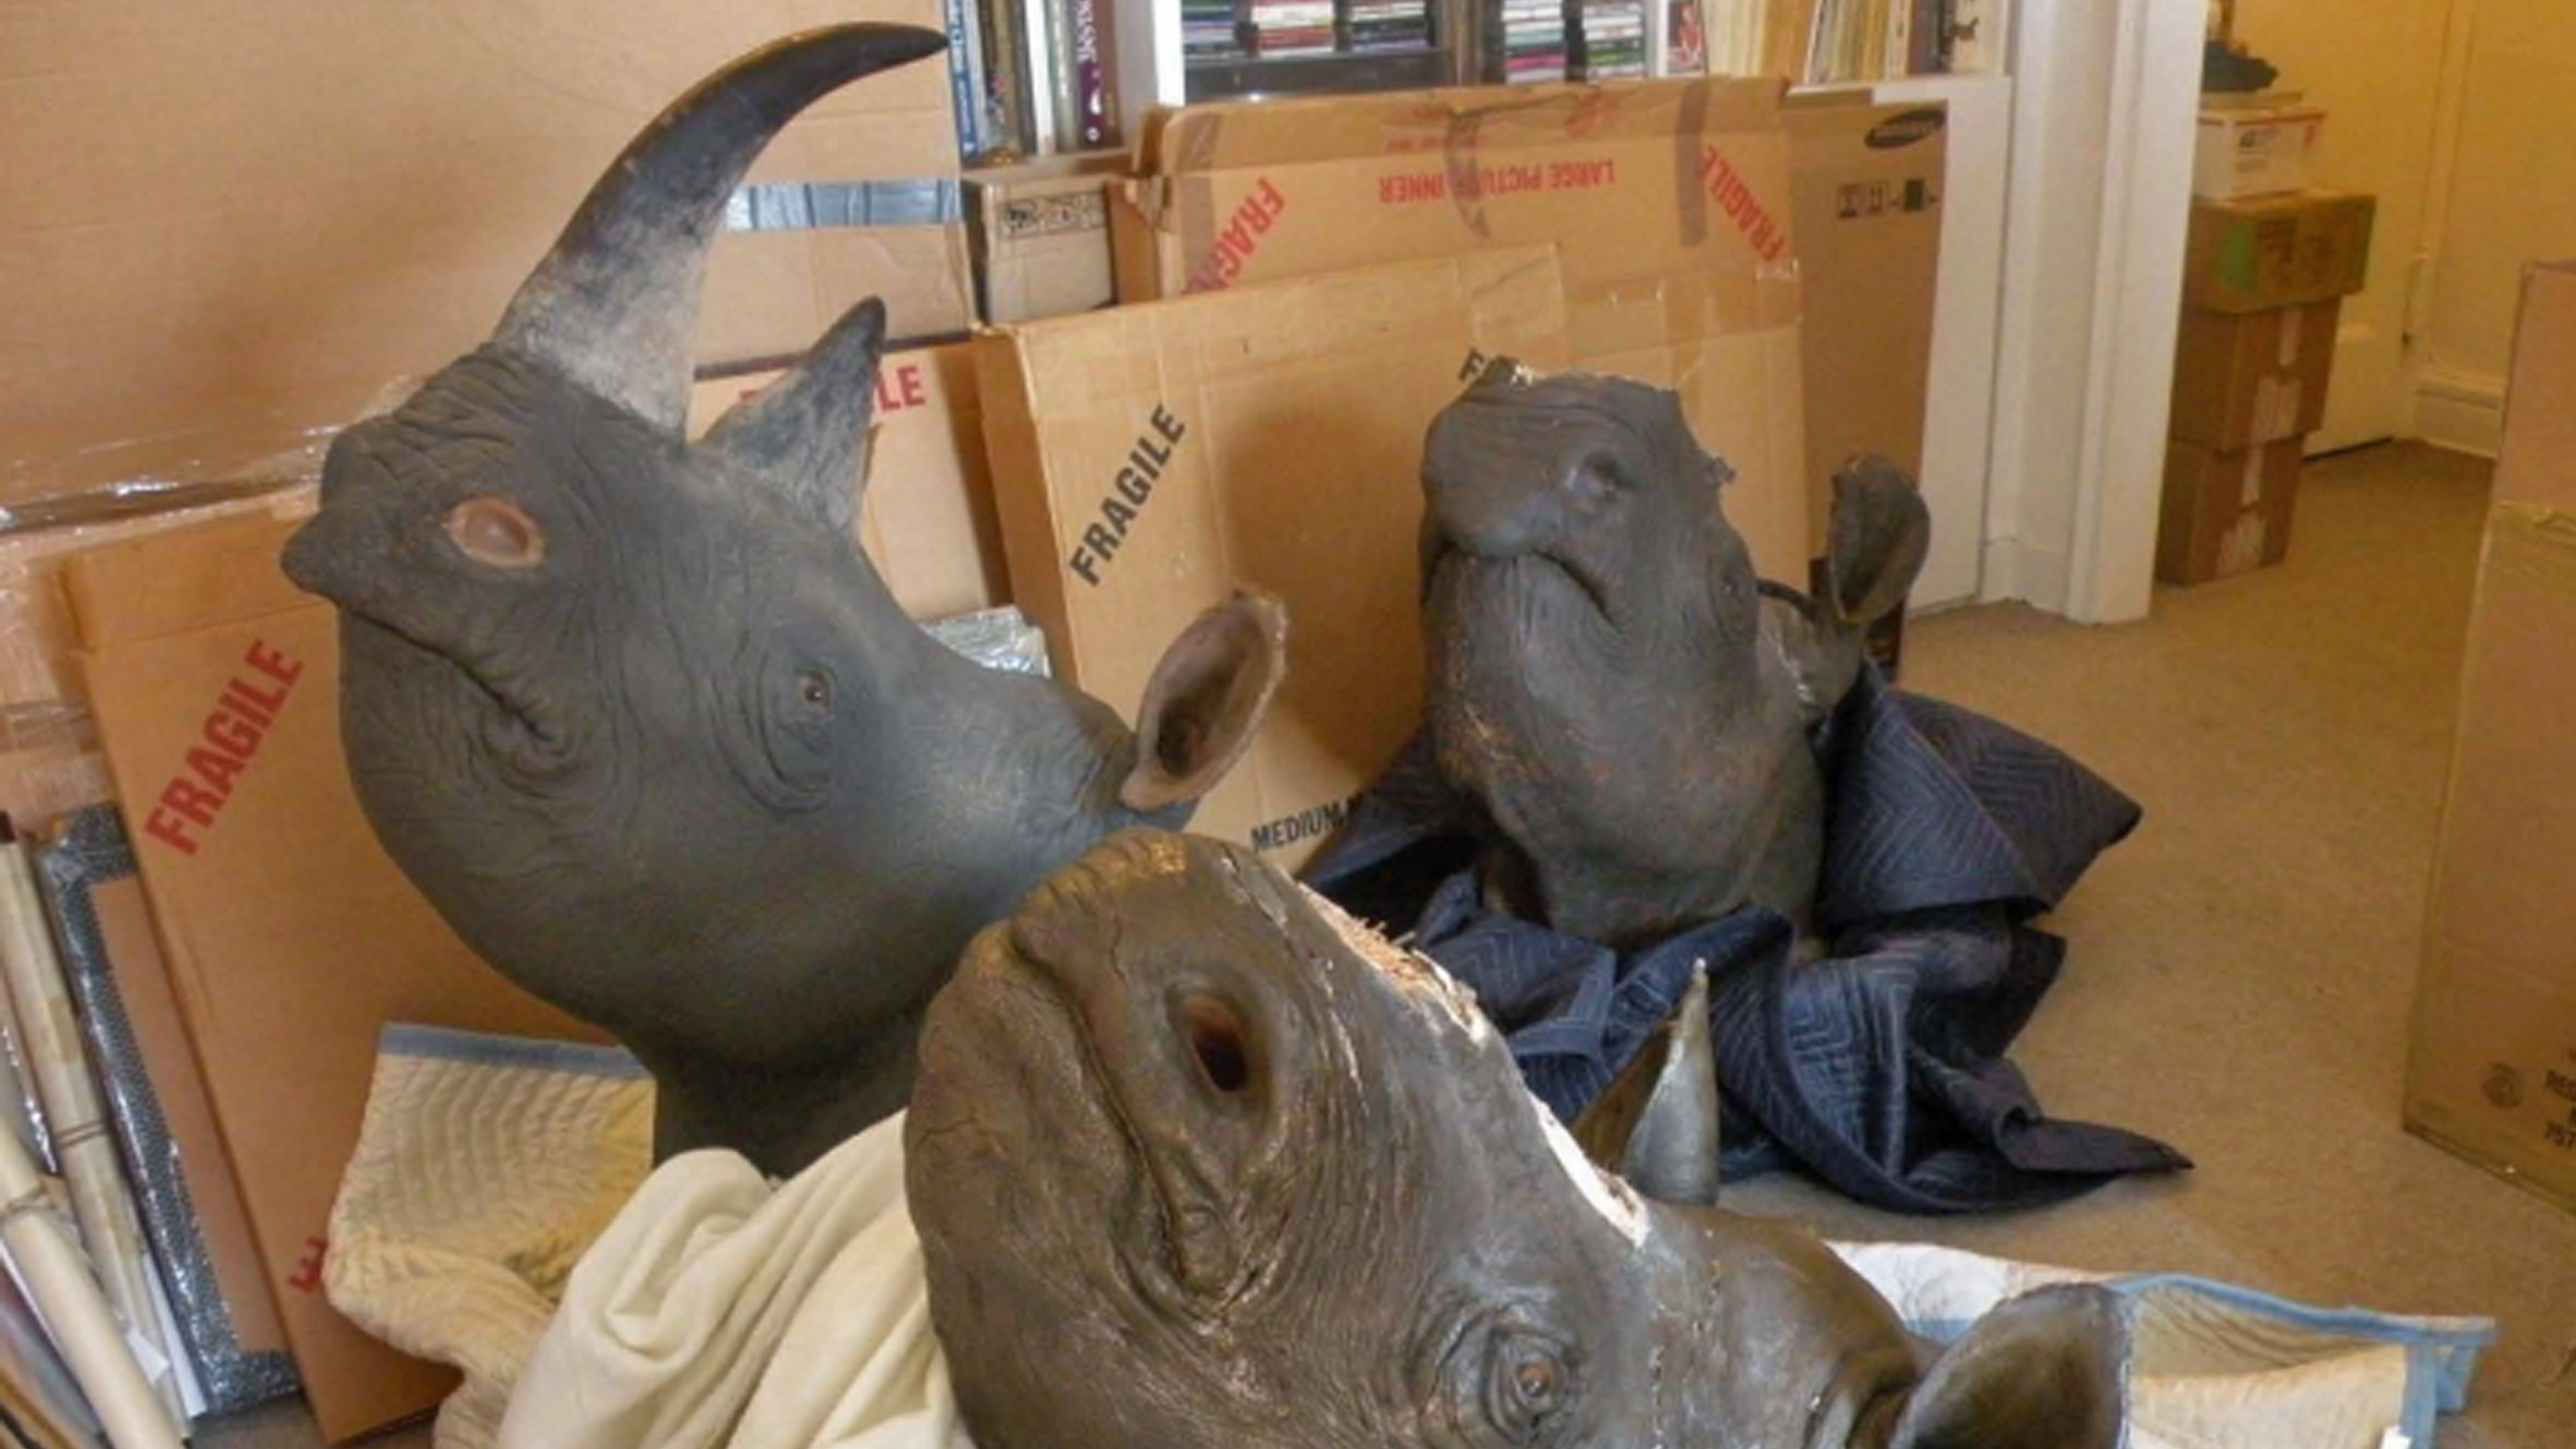 This photo provided by the United States Attorney's Office, on Tuesday, July 31, 2012, shows mounted rhinoceros heads seized in a crackdown on black market rhino horns. David Hausman, a New York City antiques dealer, pleaded guilty on Tuesday to charges he double-crossed wildlife protection authorities by first offering to help fight illegal sales of rhinoceros horns, then buying some himself. (AP Photo/United States Attorney's Office